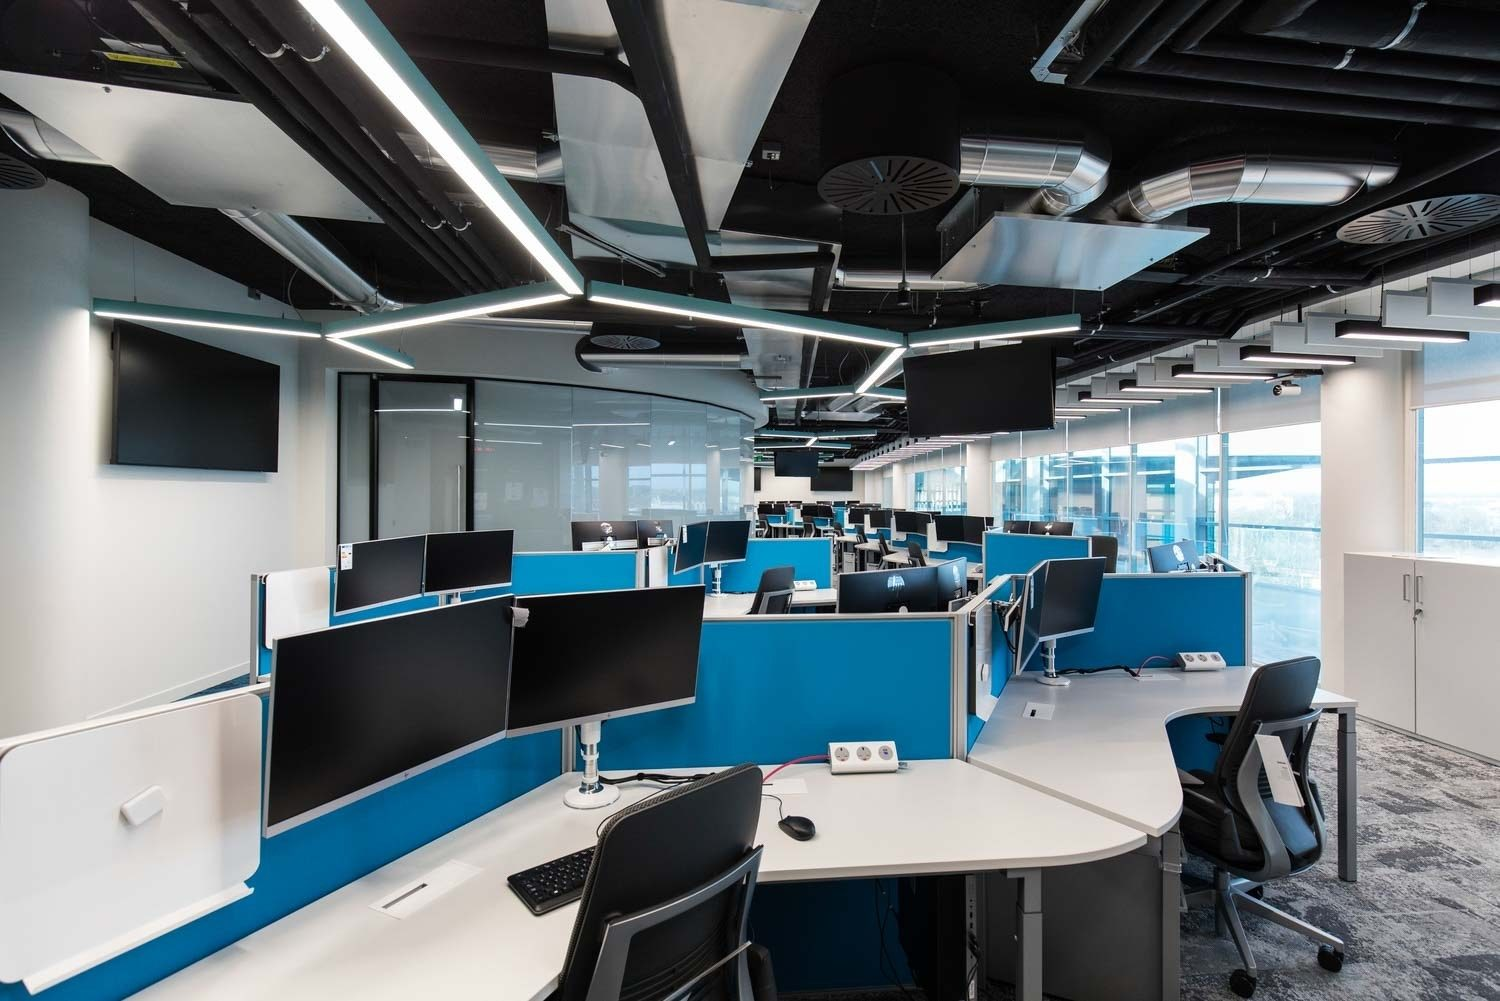 Computer monitors in open plan office